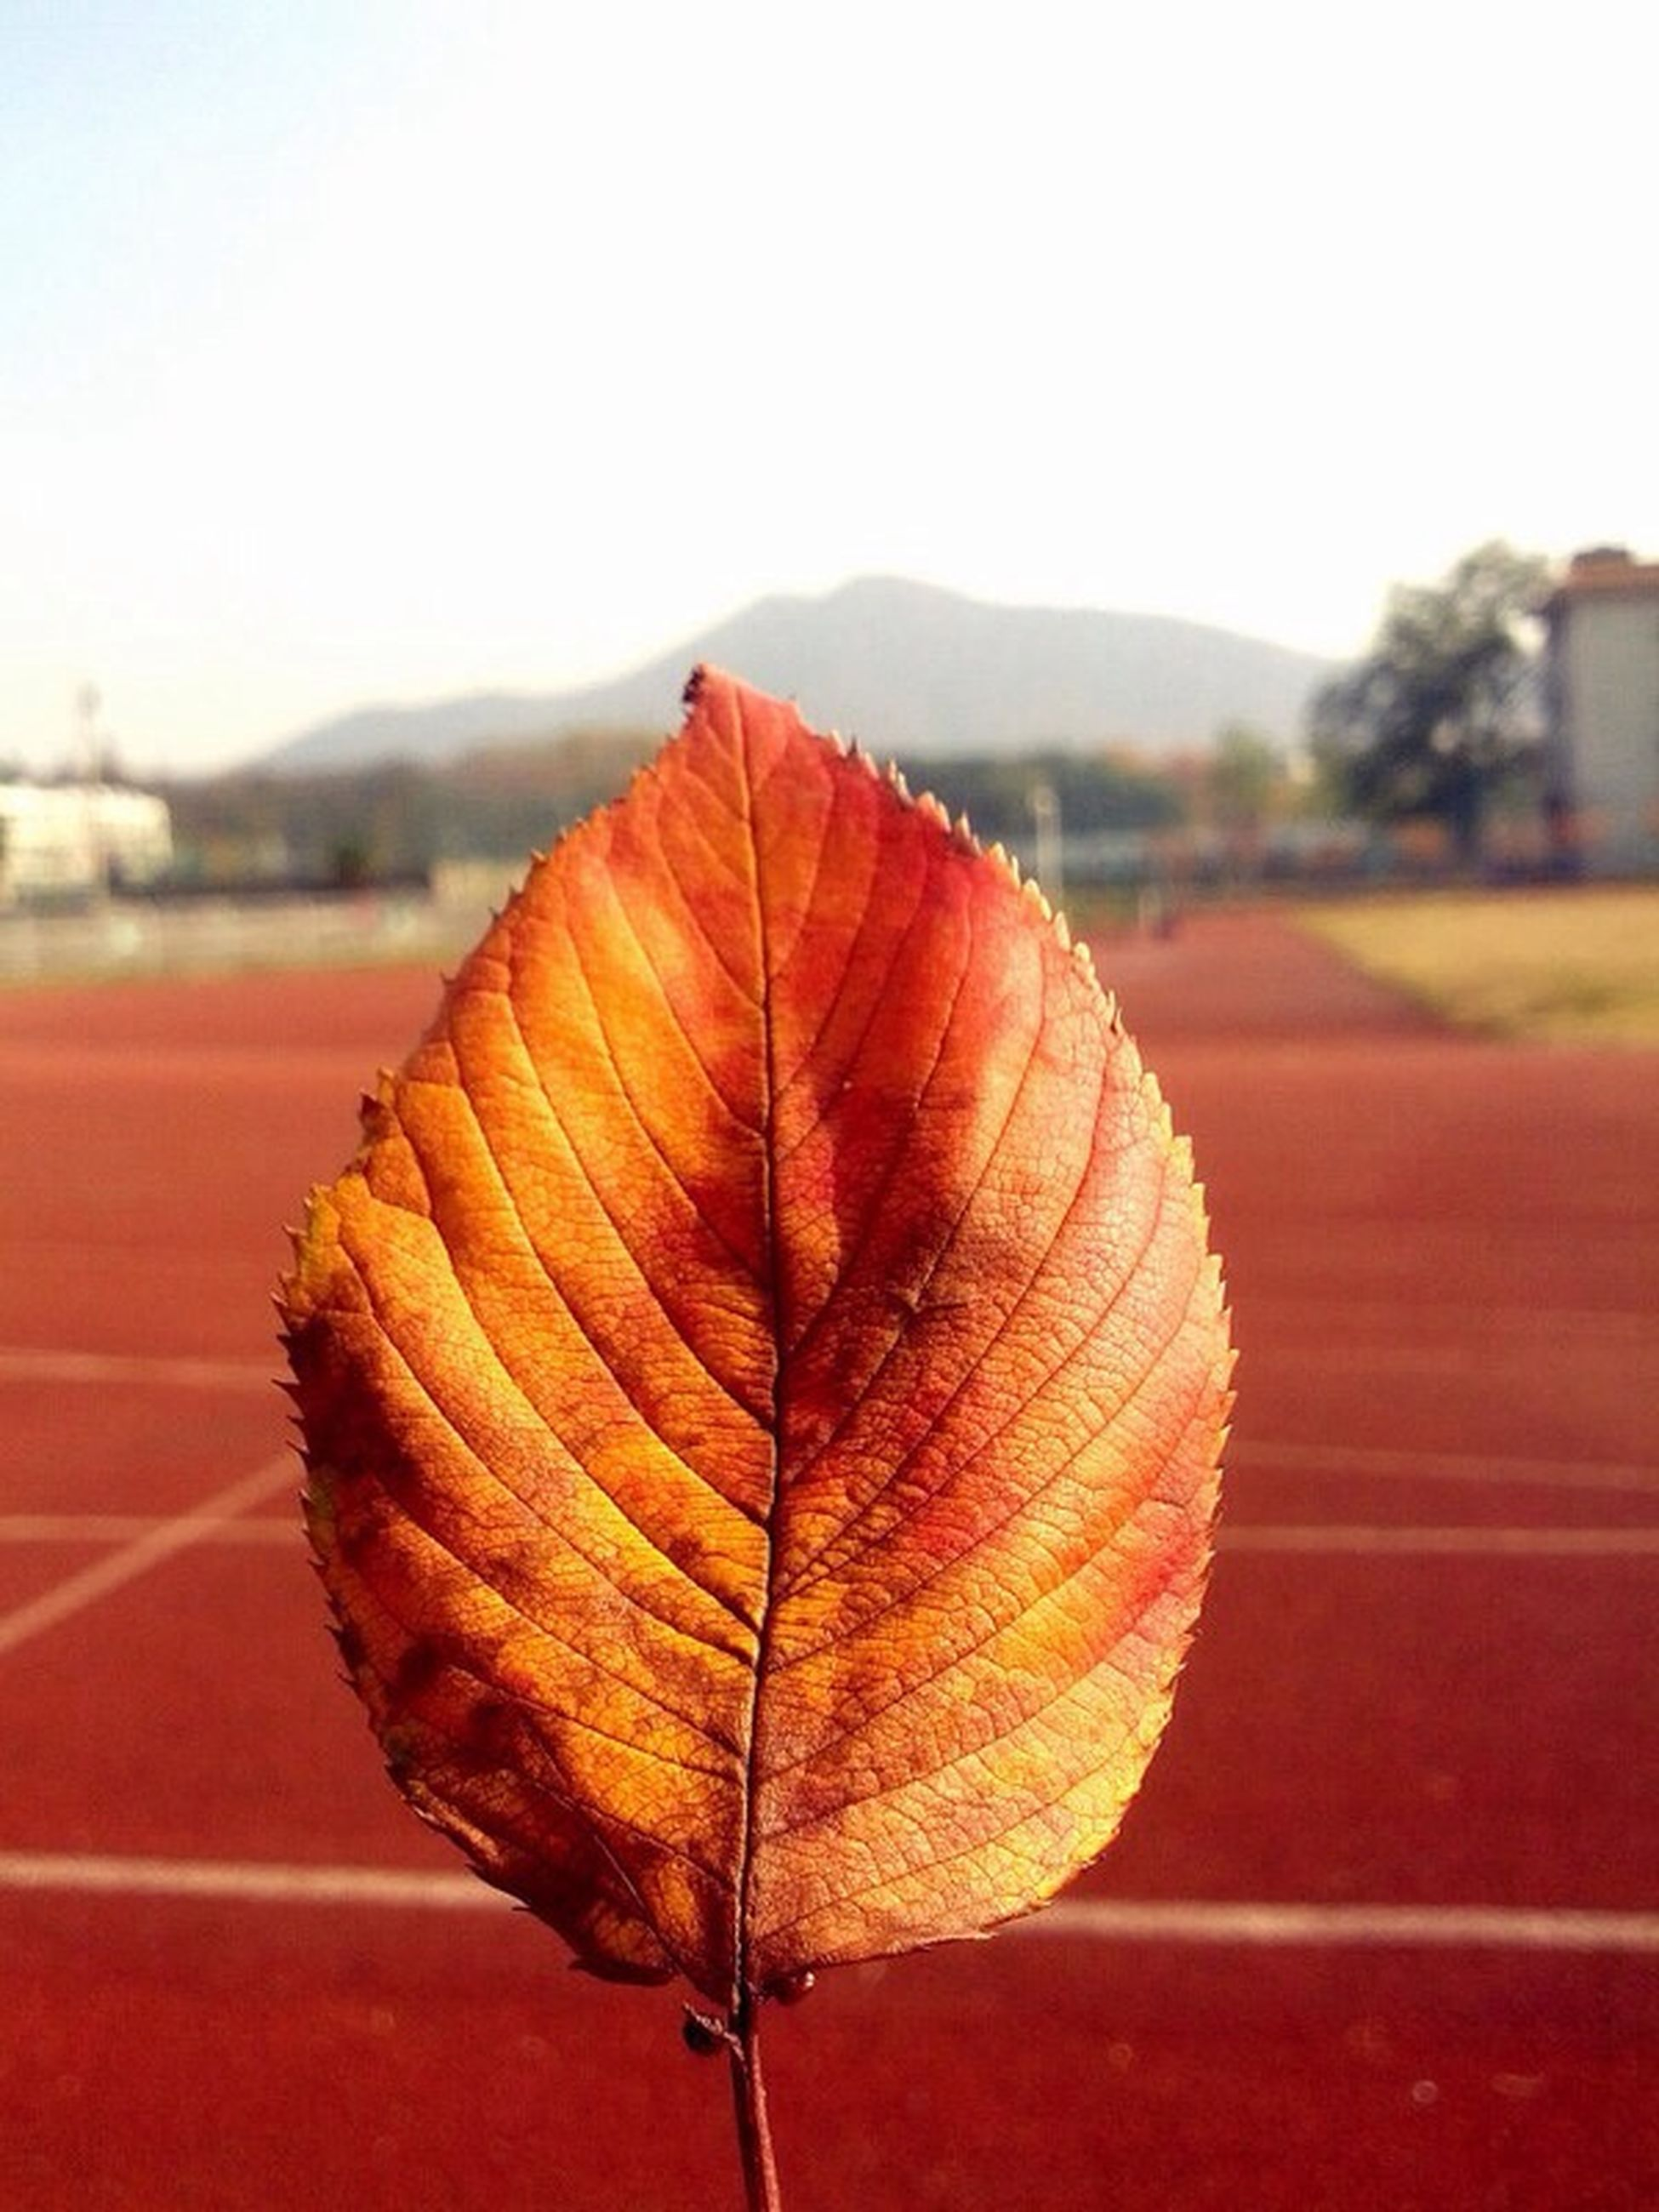 leaf vein, close-up, natural pattern, focus on foreground, leaf, fragility, nature, dry, beauty in nature, tranquility, outdoors, single object, no people, red, pattern, day, clear sky, stem, autumn, season